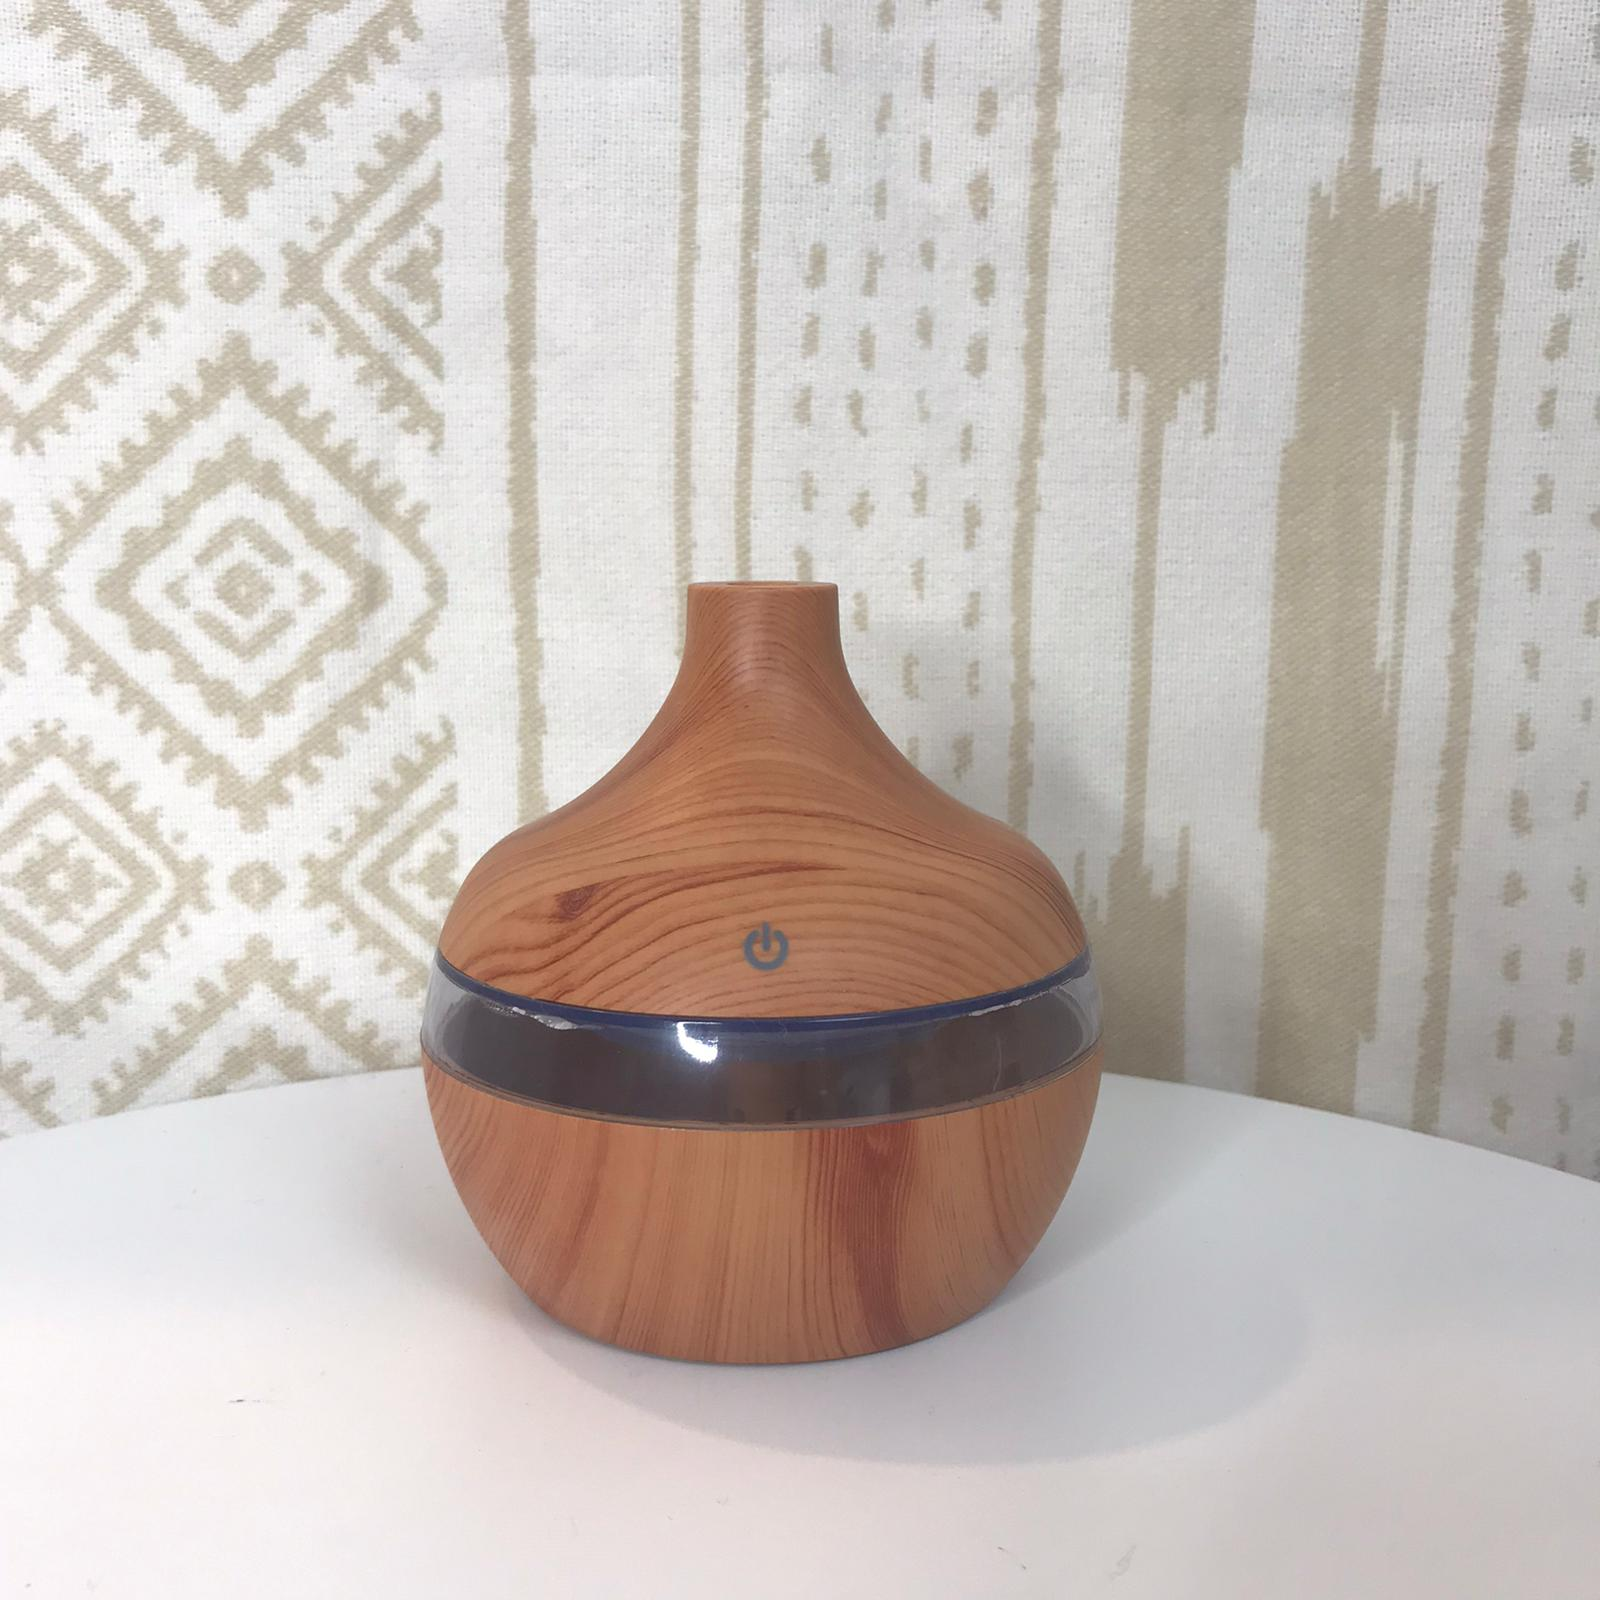 Electric Essential Aroma Oil Diffuser - Light Wood